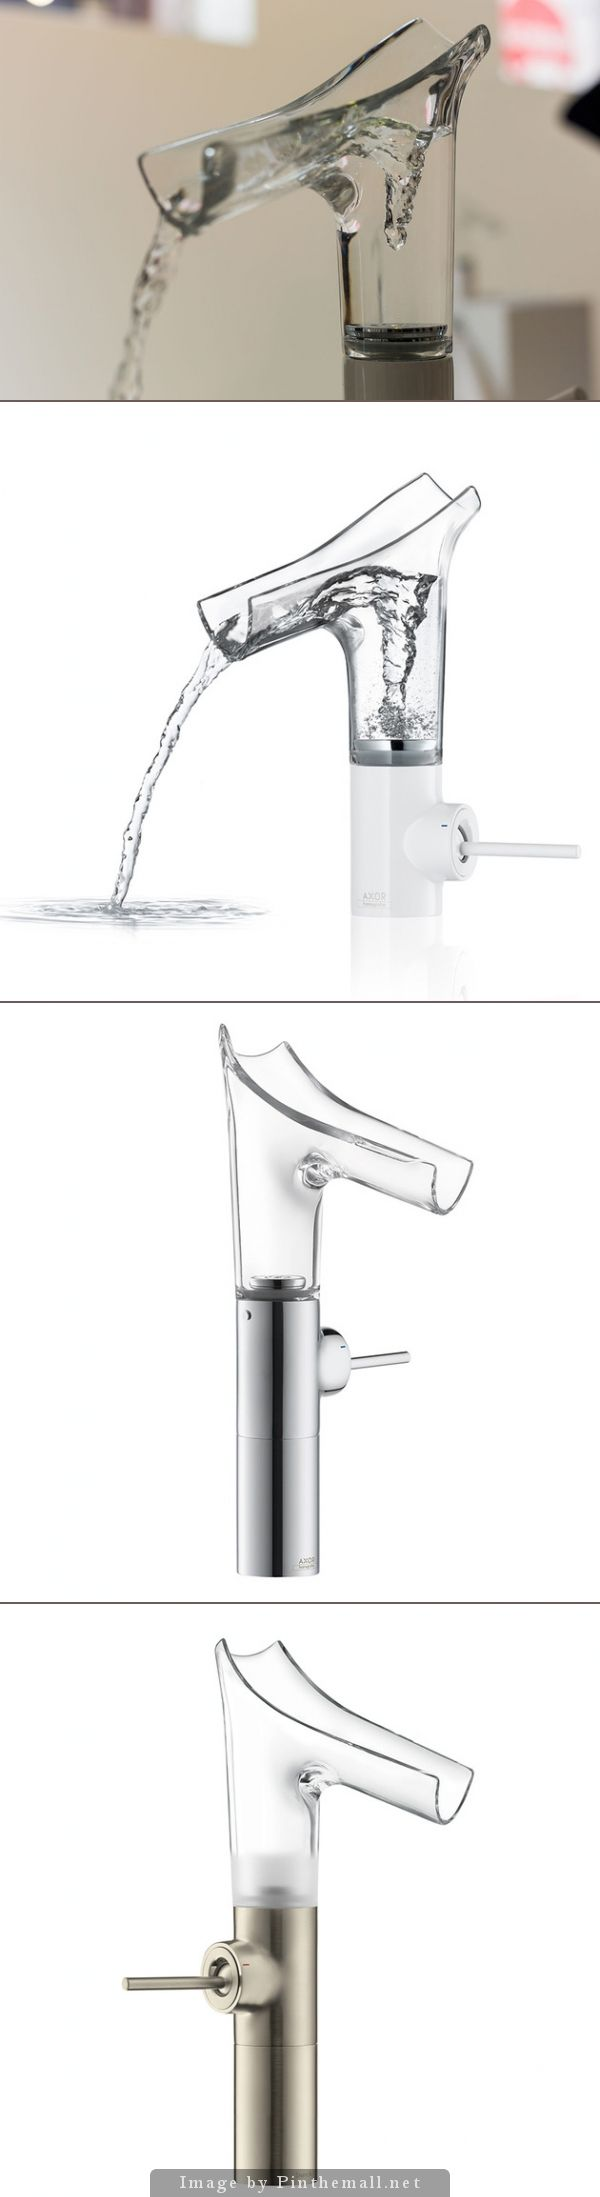 Astonishing Faucet With Clear Glass Spout Axor Stark V Home Decor